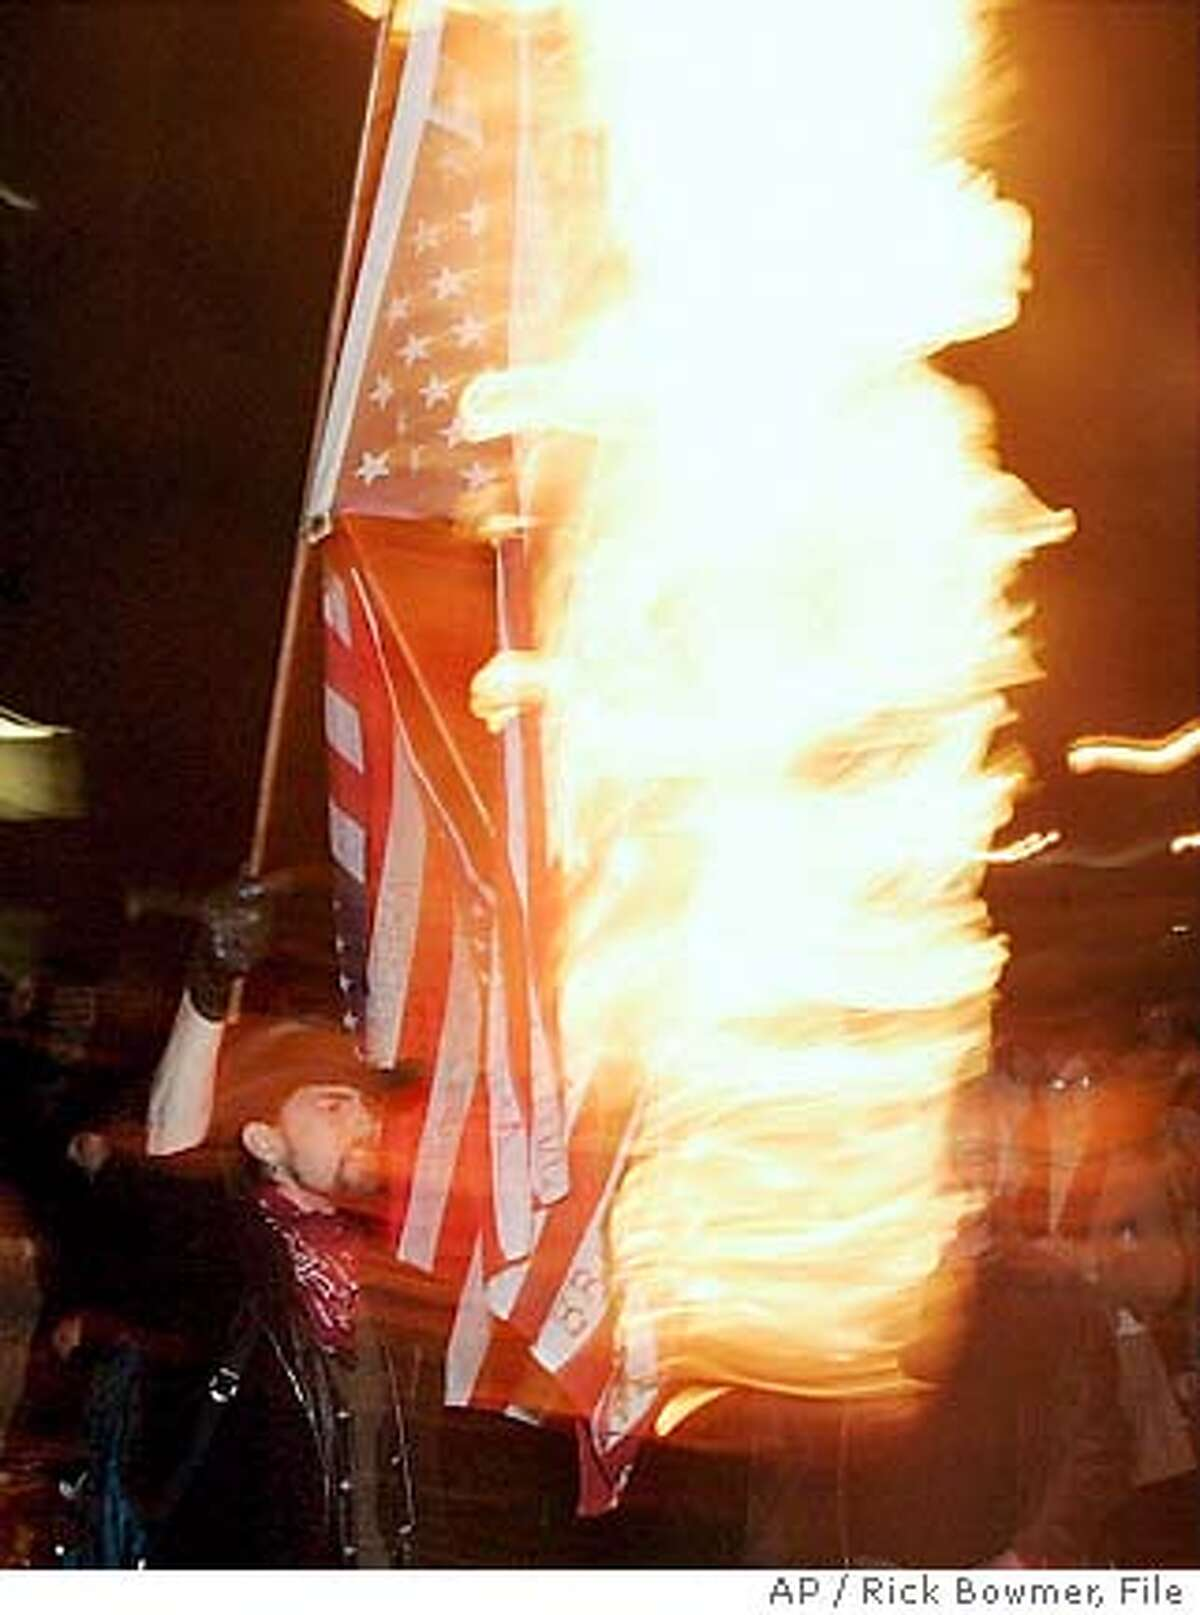 ** FILE ** A protester burns an American flag to protest President Bush's second inauguration during a march in downtown Portland, Ore., in this Thursday, Jan. 20, 2005 file photo. The House on Wednesday, June 22, 2005 approved a constitutional amendment that would give Congress the power to ban desecration of the American flag, a measure that for the first time stands a chance of passing the Senate as well. (AP Photo/Rick Bowmer)